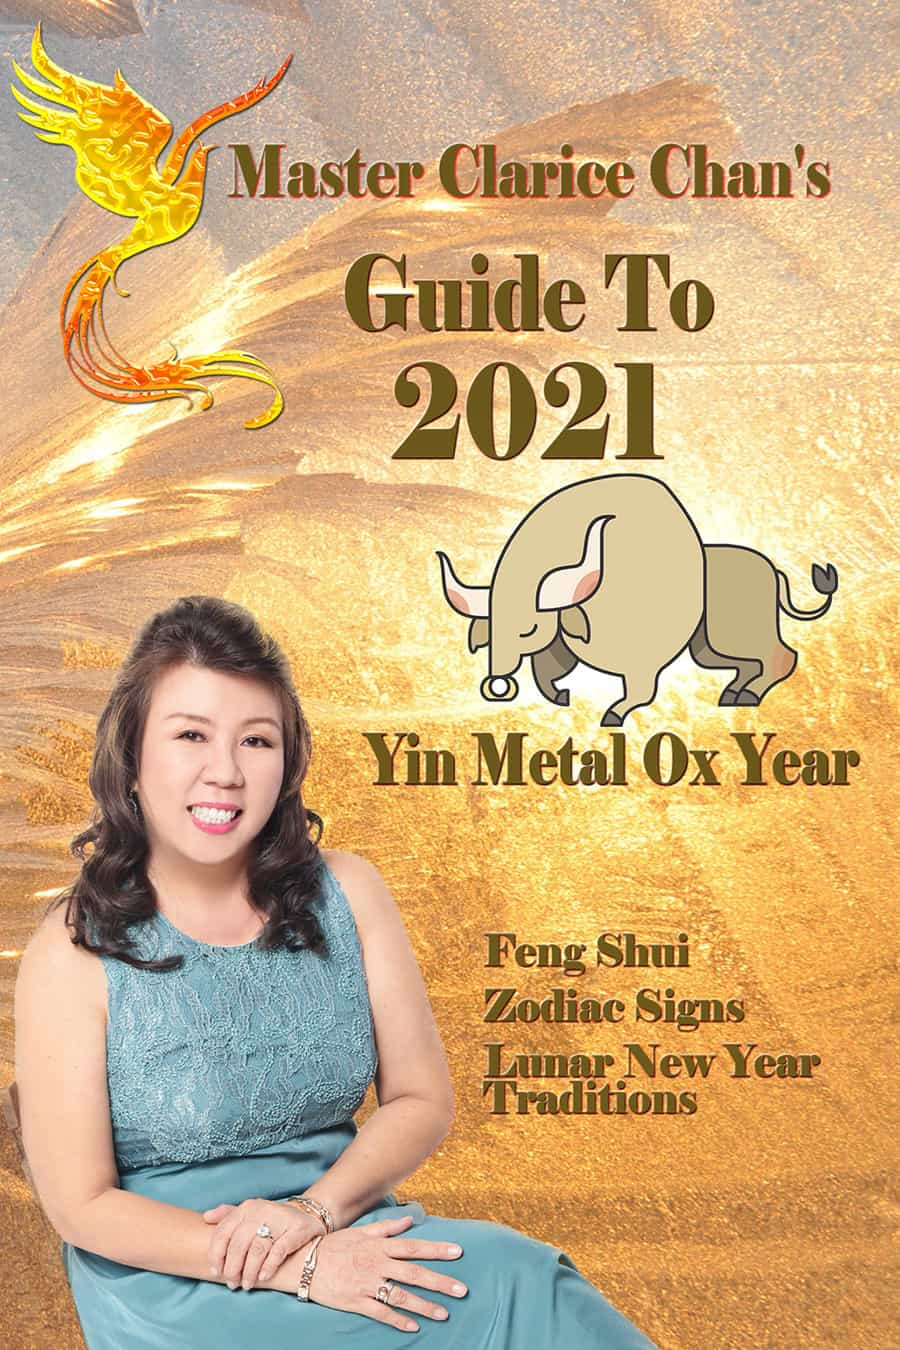 Master Clarice Chan's Guide to 2021